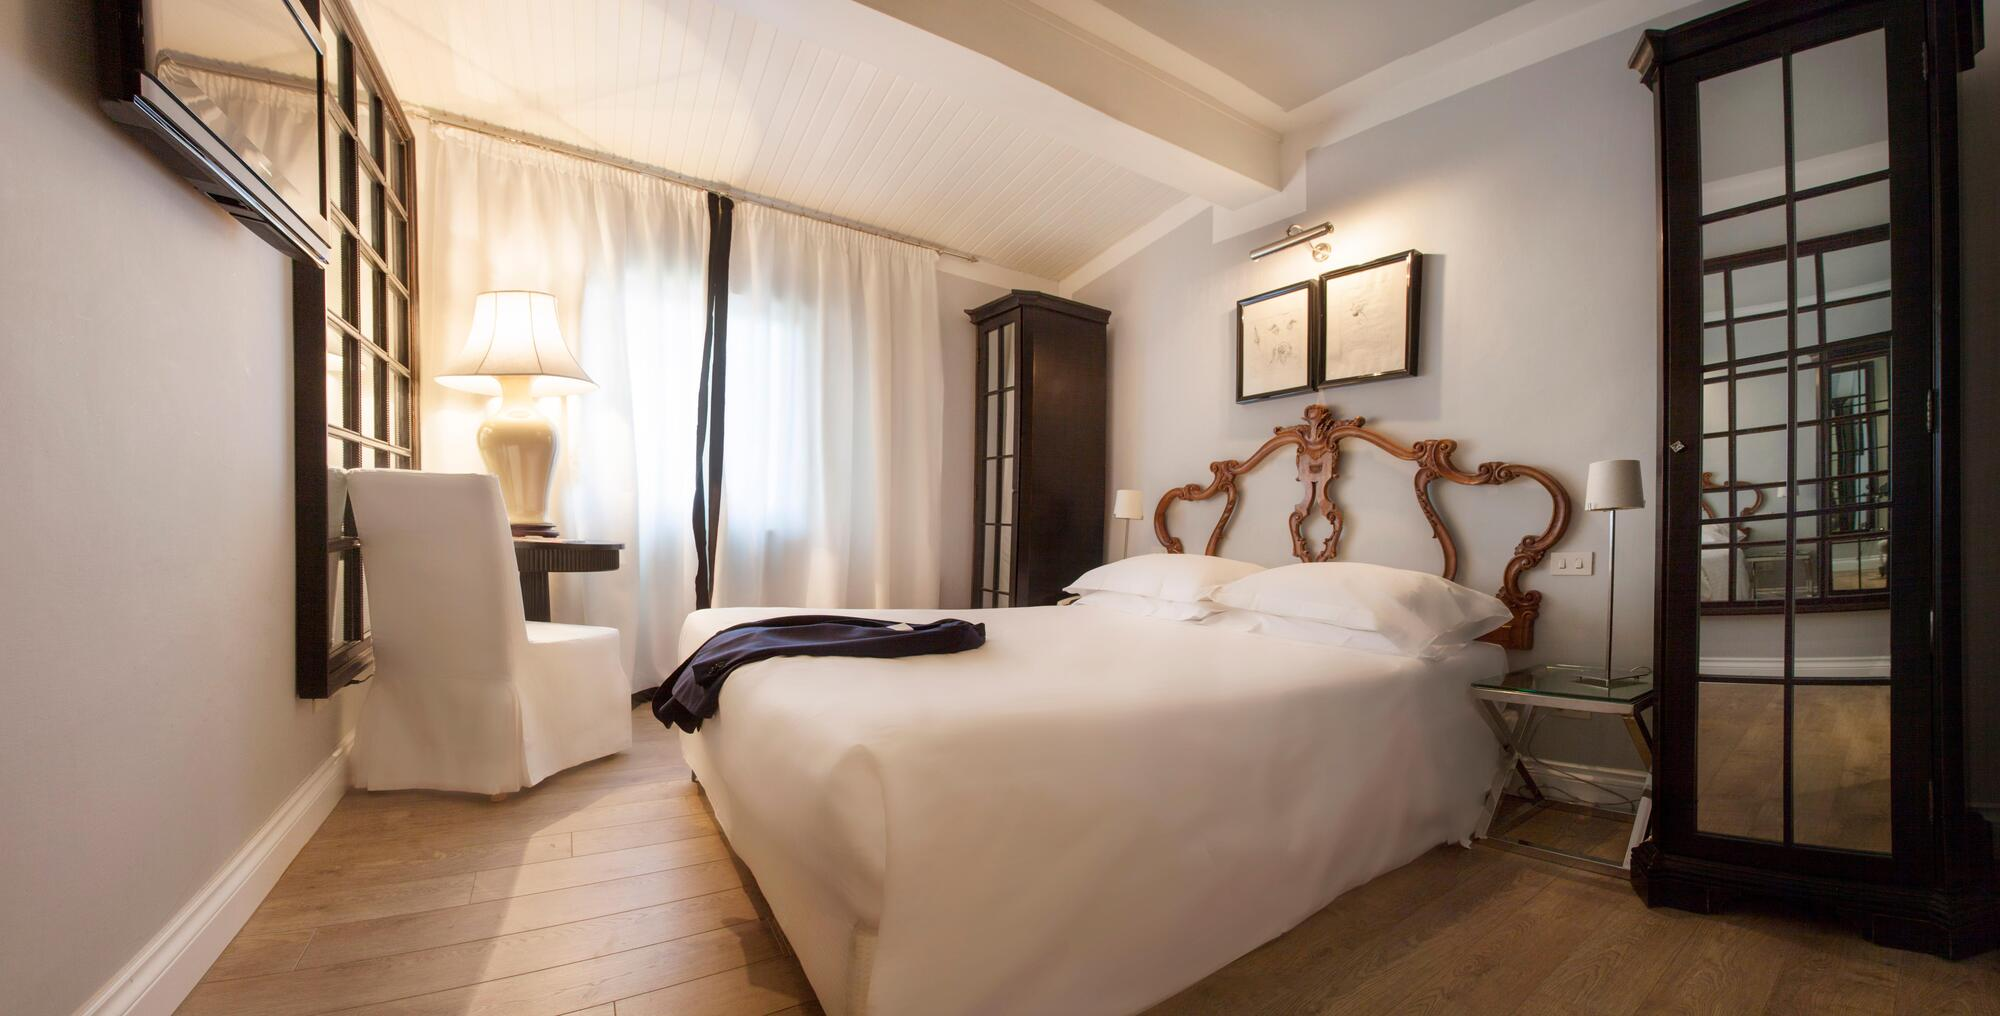 Cellai Boutique Hotel, Florence Image 4